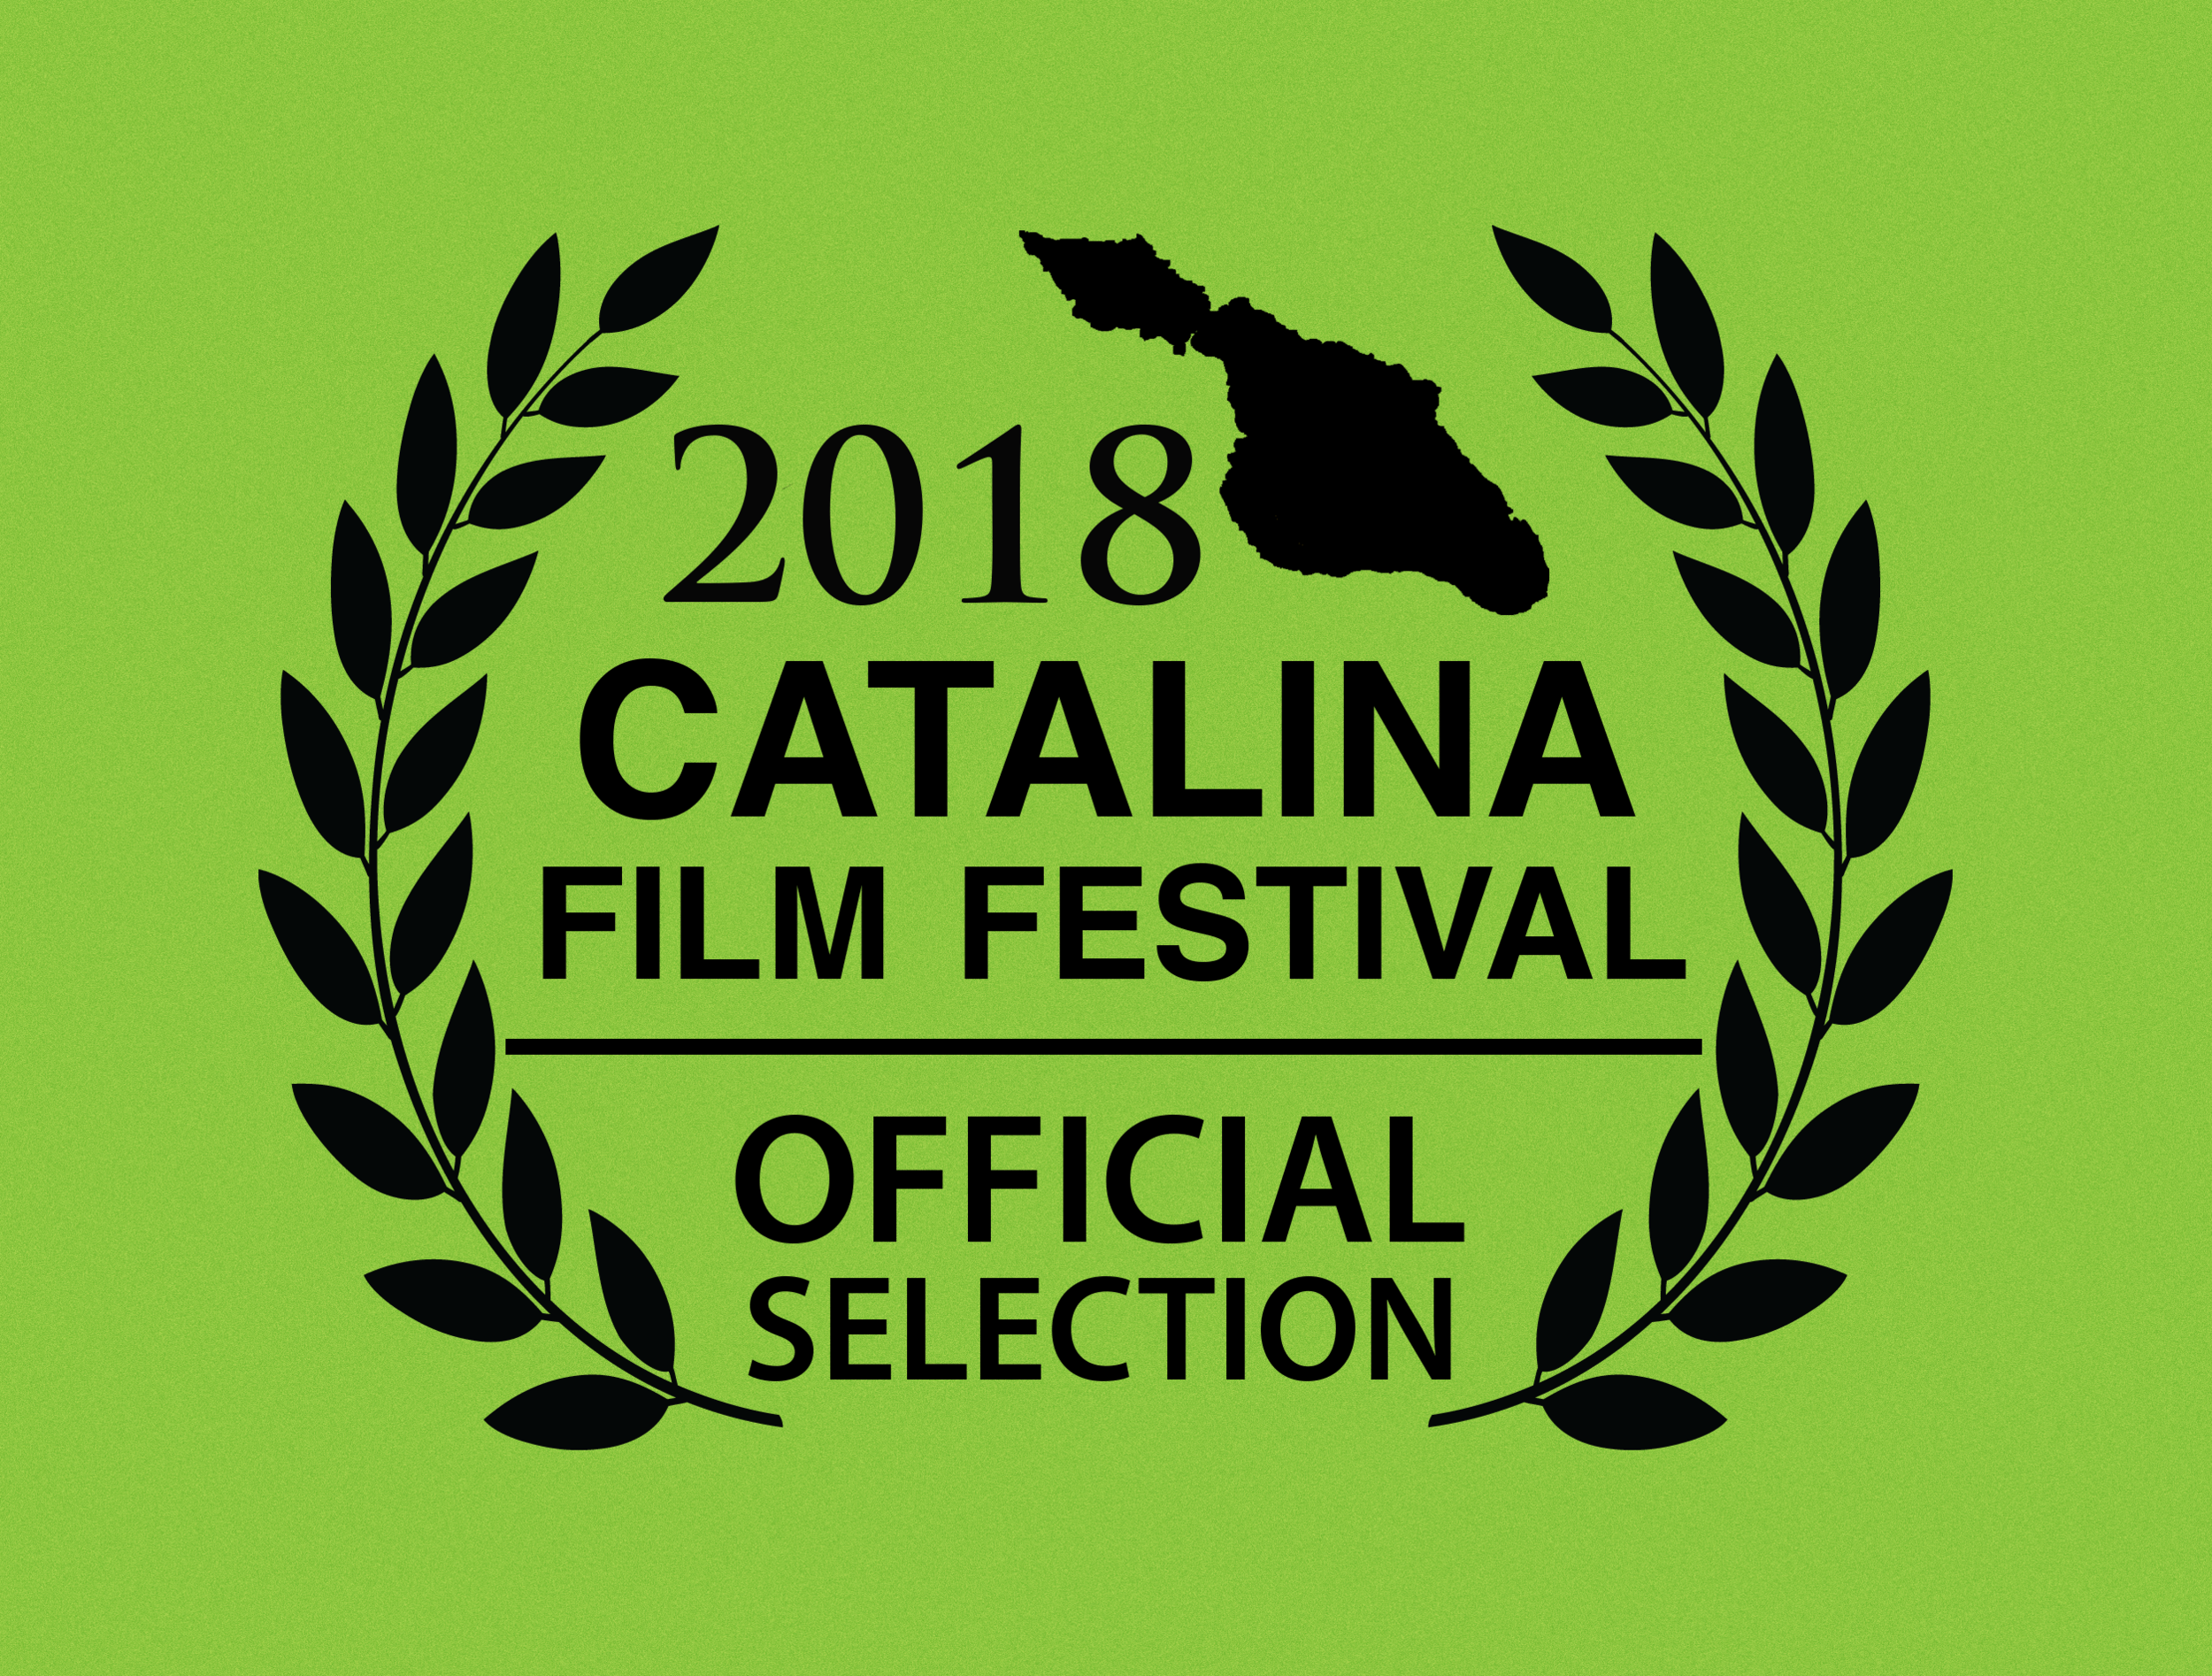 Catalina Film Festival - September 26-18, 2018